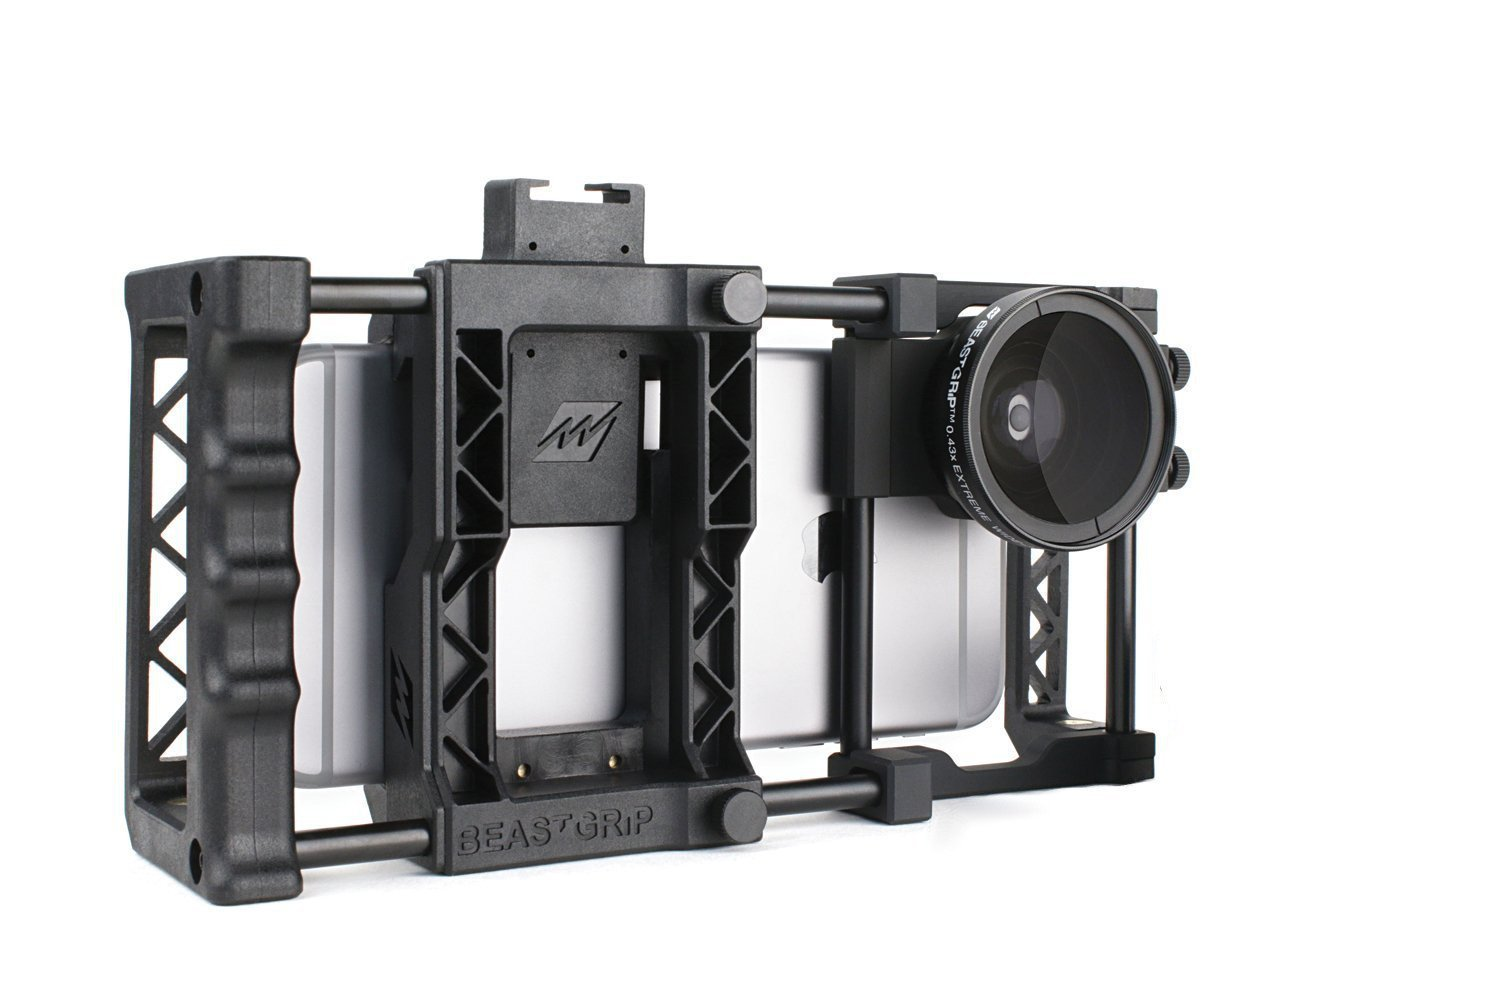 Beastgrip Pro + Wide Angle Lens Bundle by Beastgrip